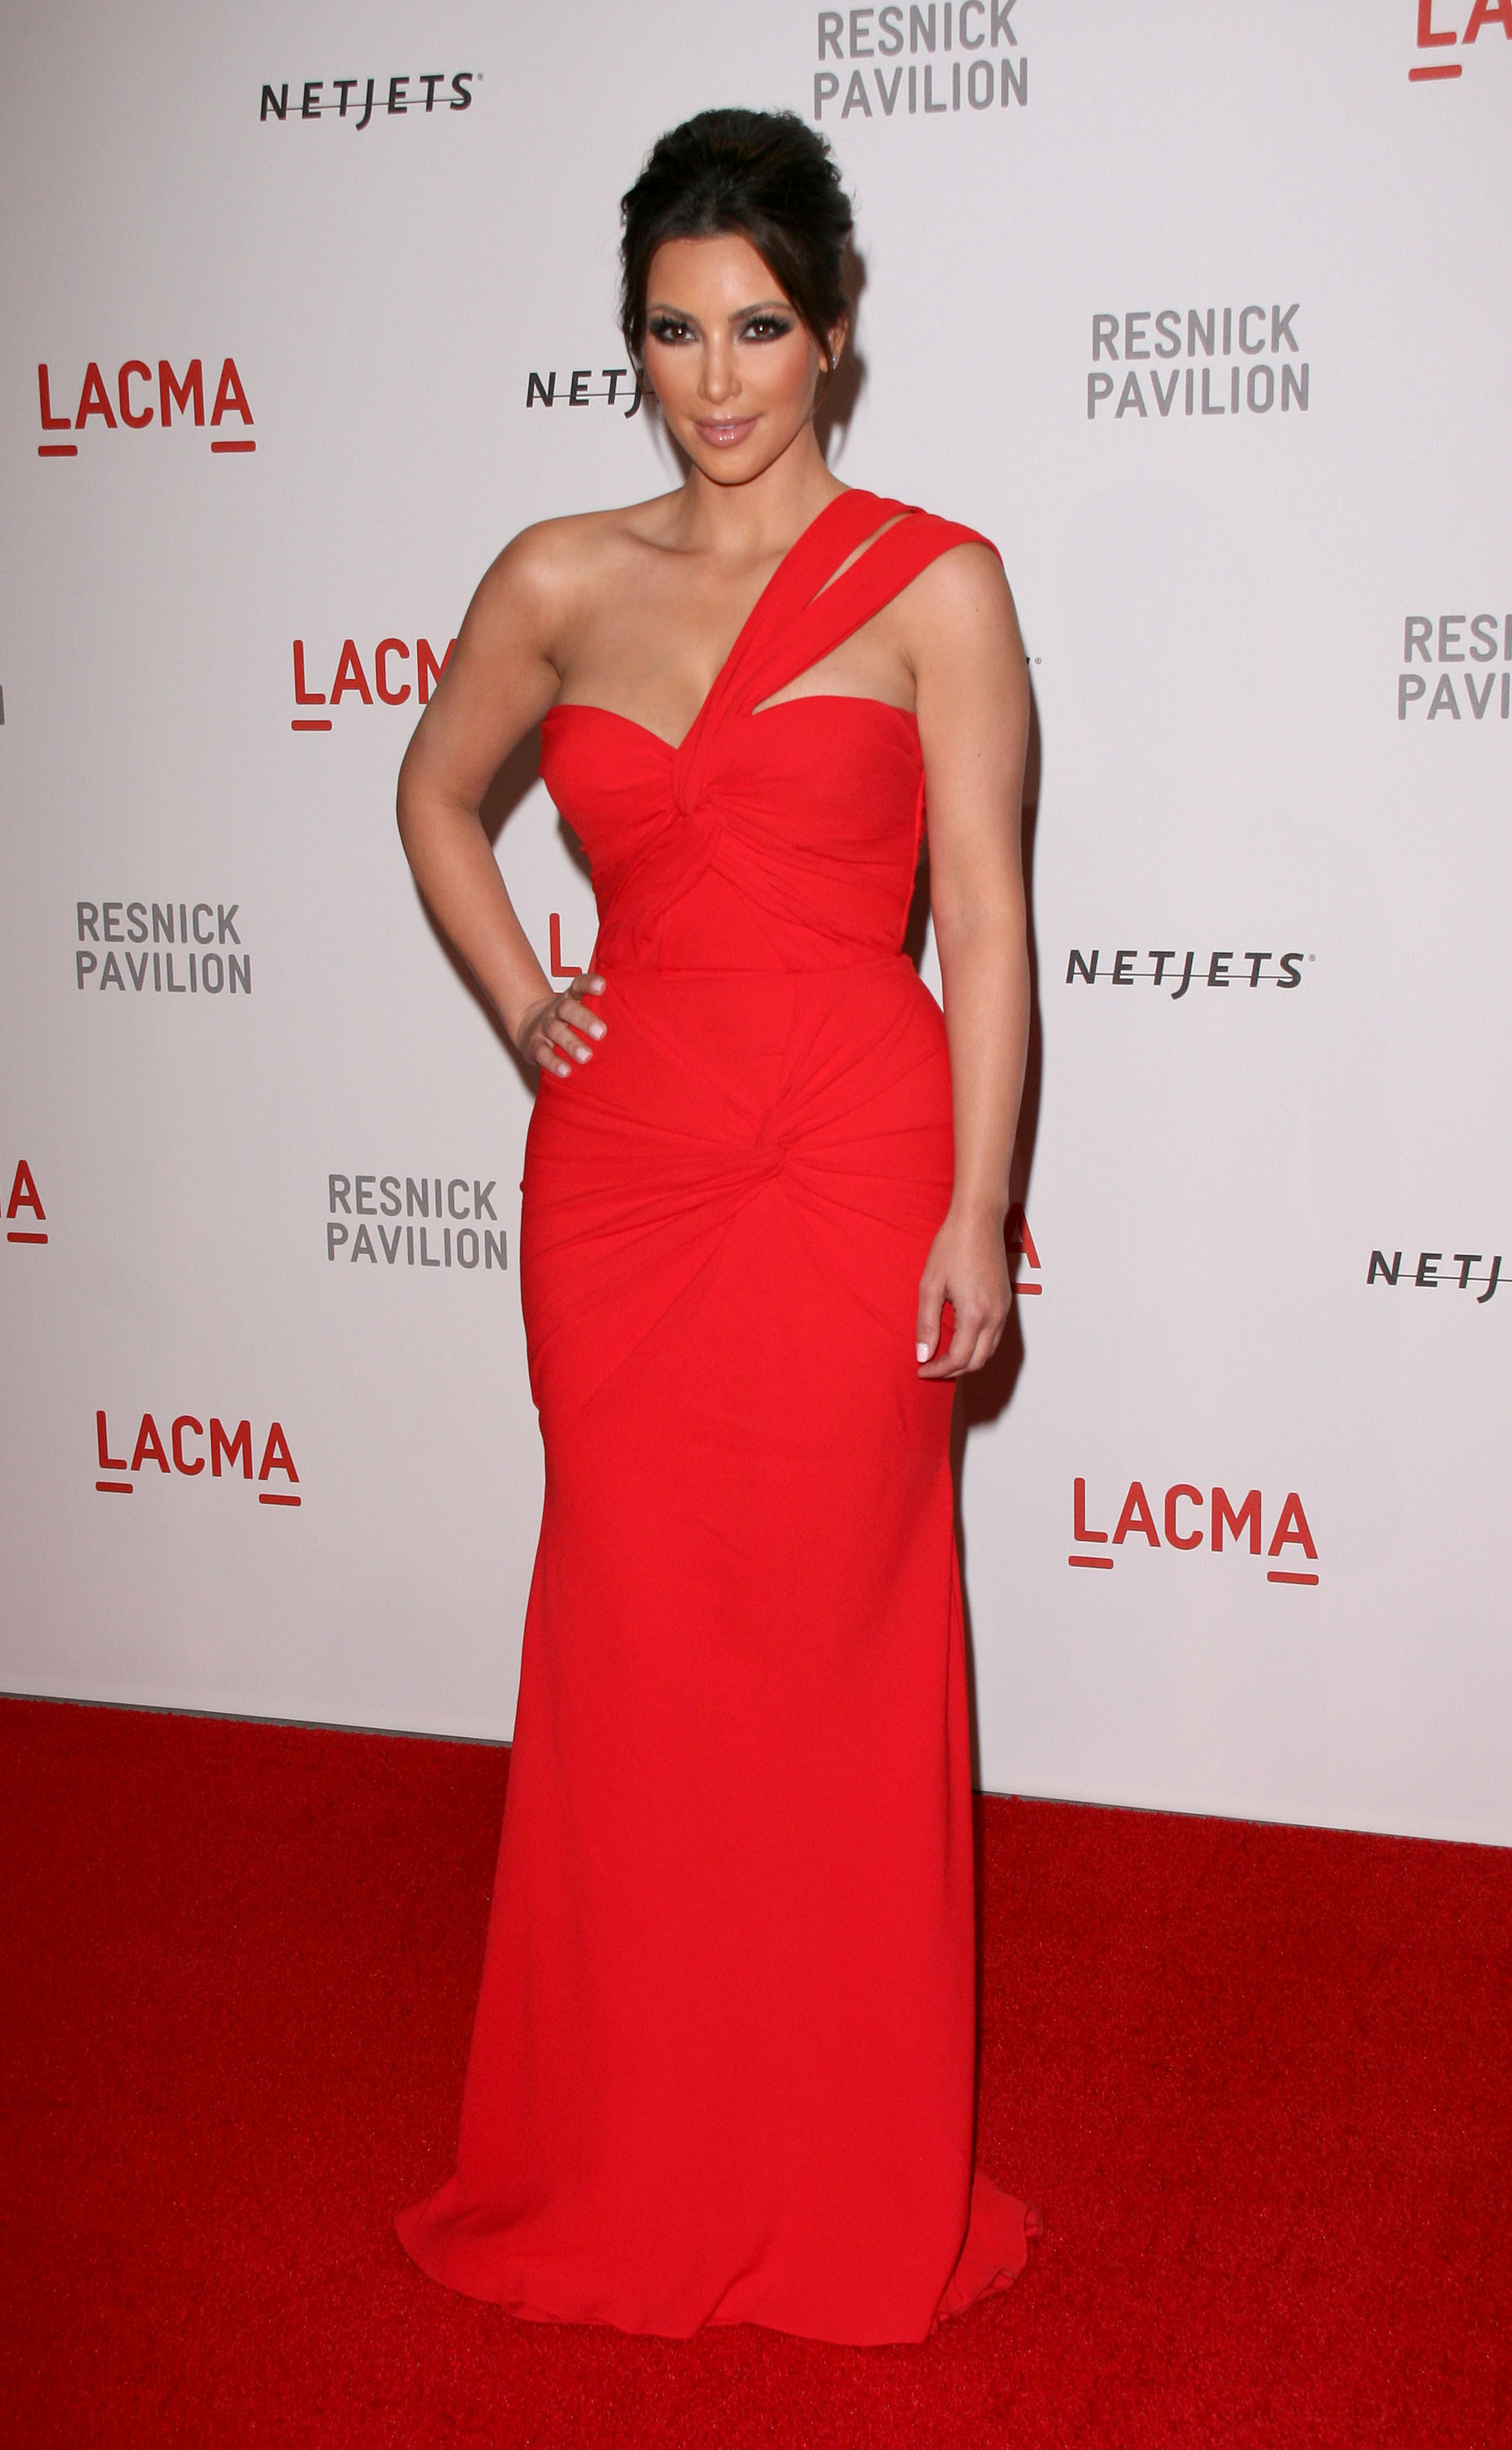 Kim Kardashian at LACMA Awards